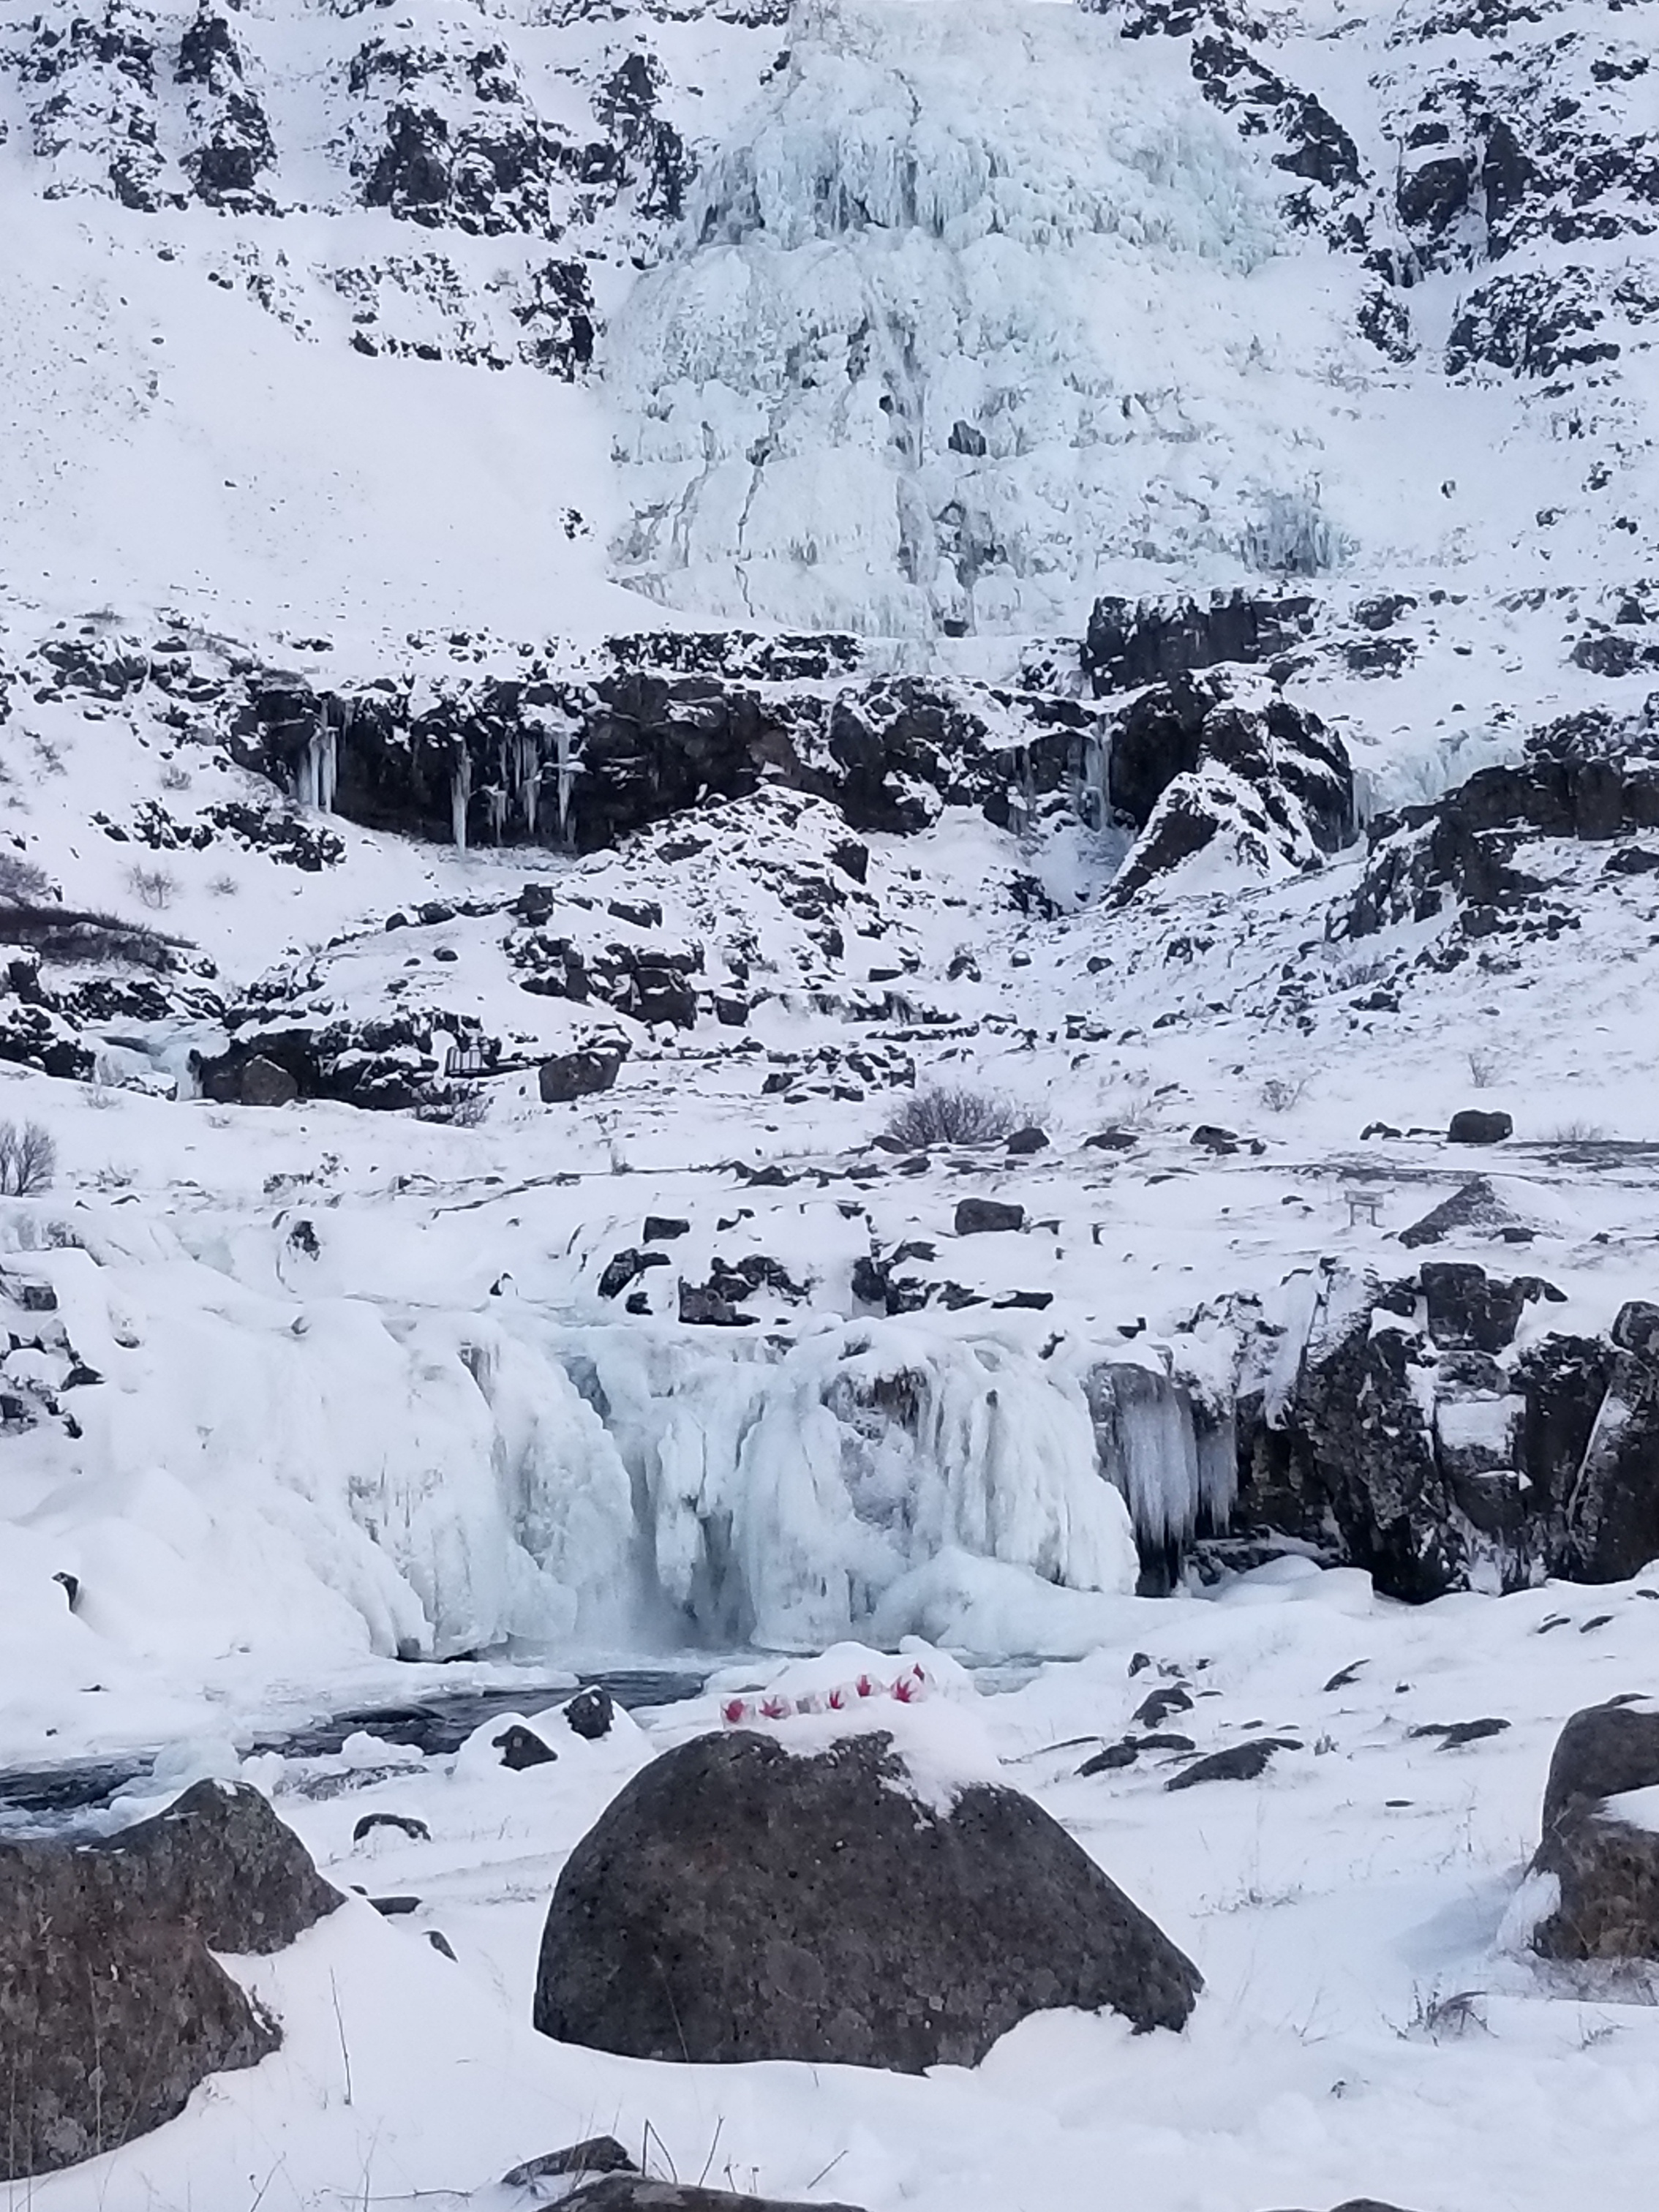 Ice embedded with leaves at the base of Dynjandi waterfall in Iceland, frozen above at 330 feet tall, November 2017.